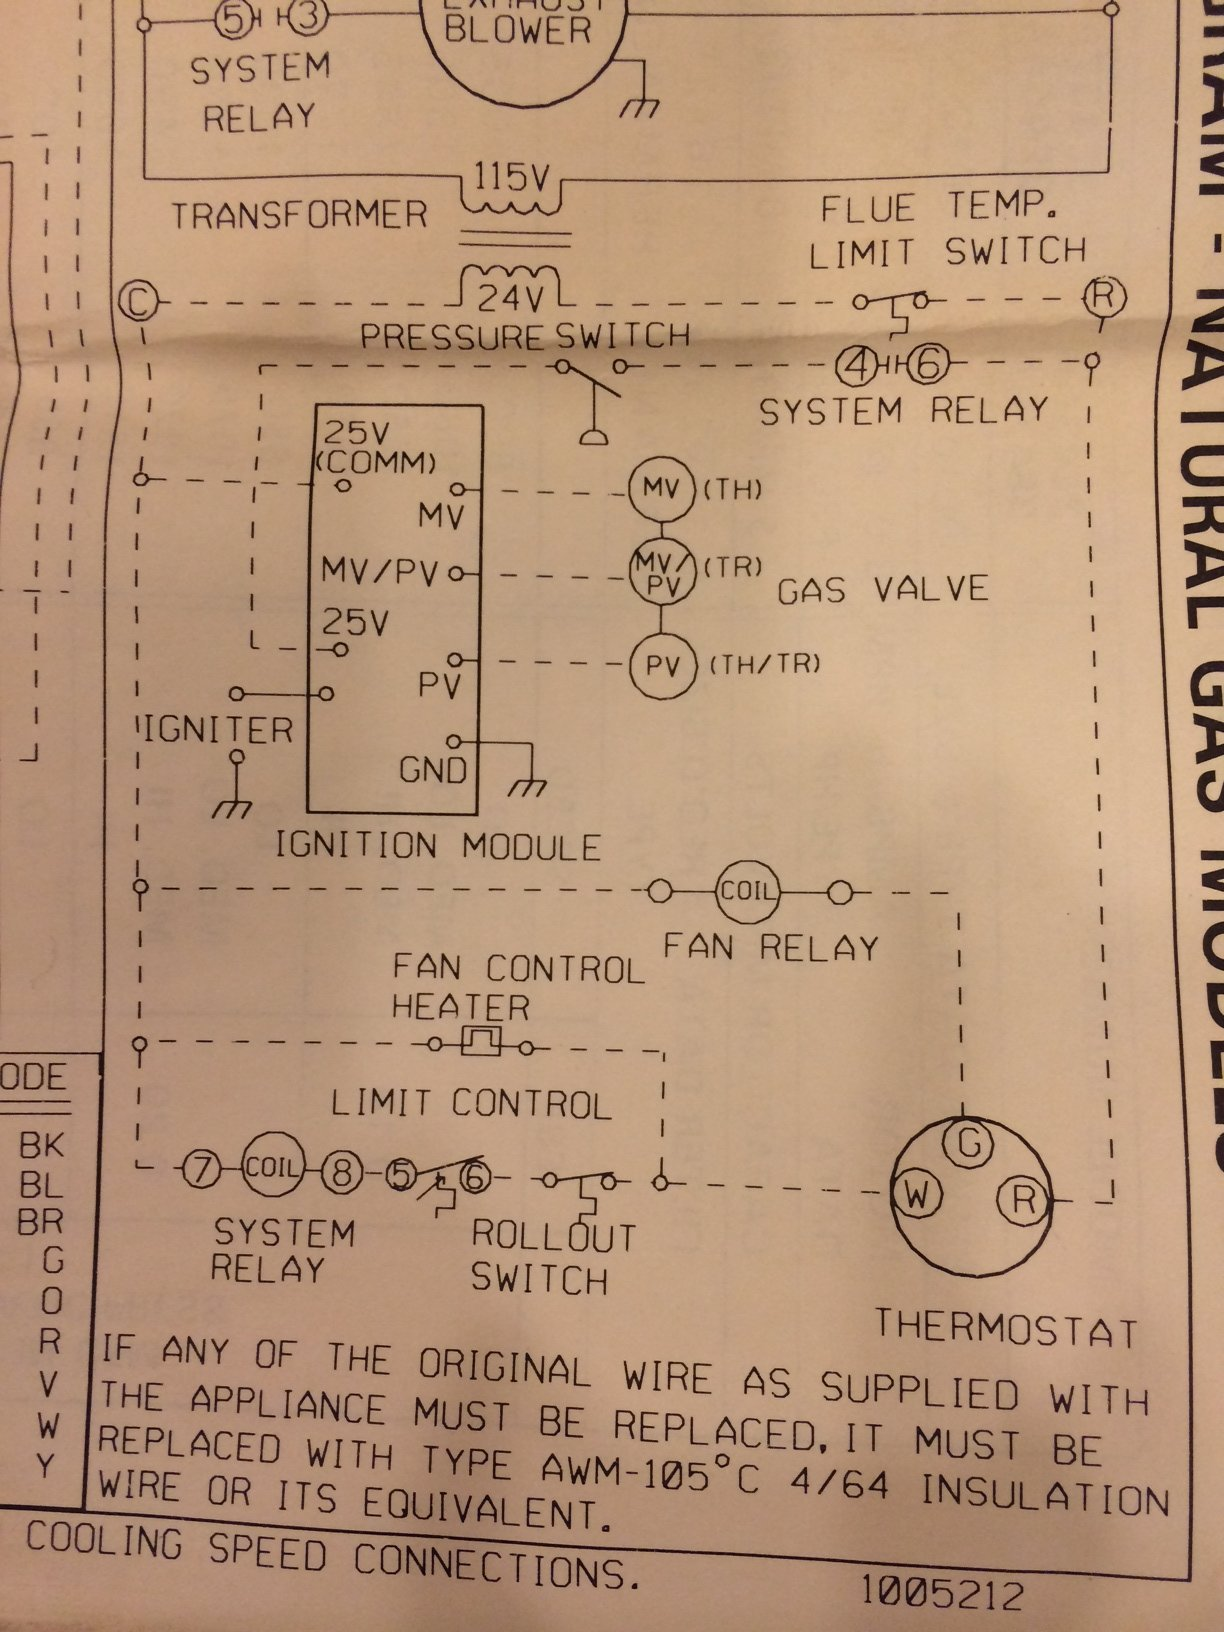 dayton blower wiring diagram i have an old dayton fuel trimmer 3e479 natural gas model ... dayton relay wiring diagram 120 volt